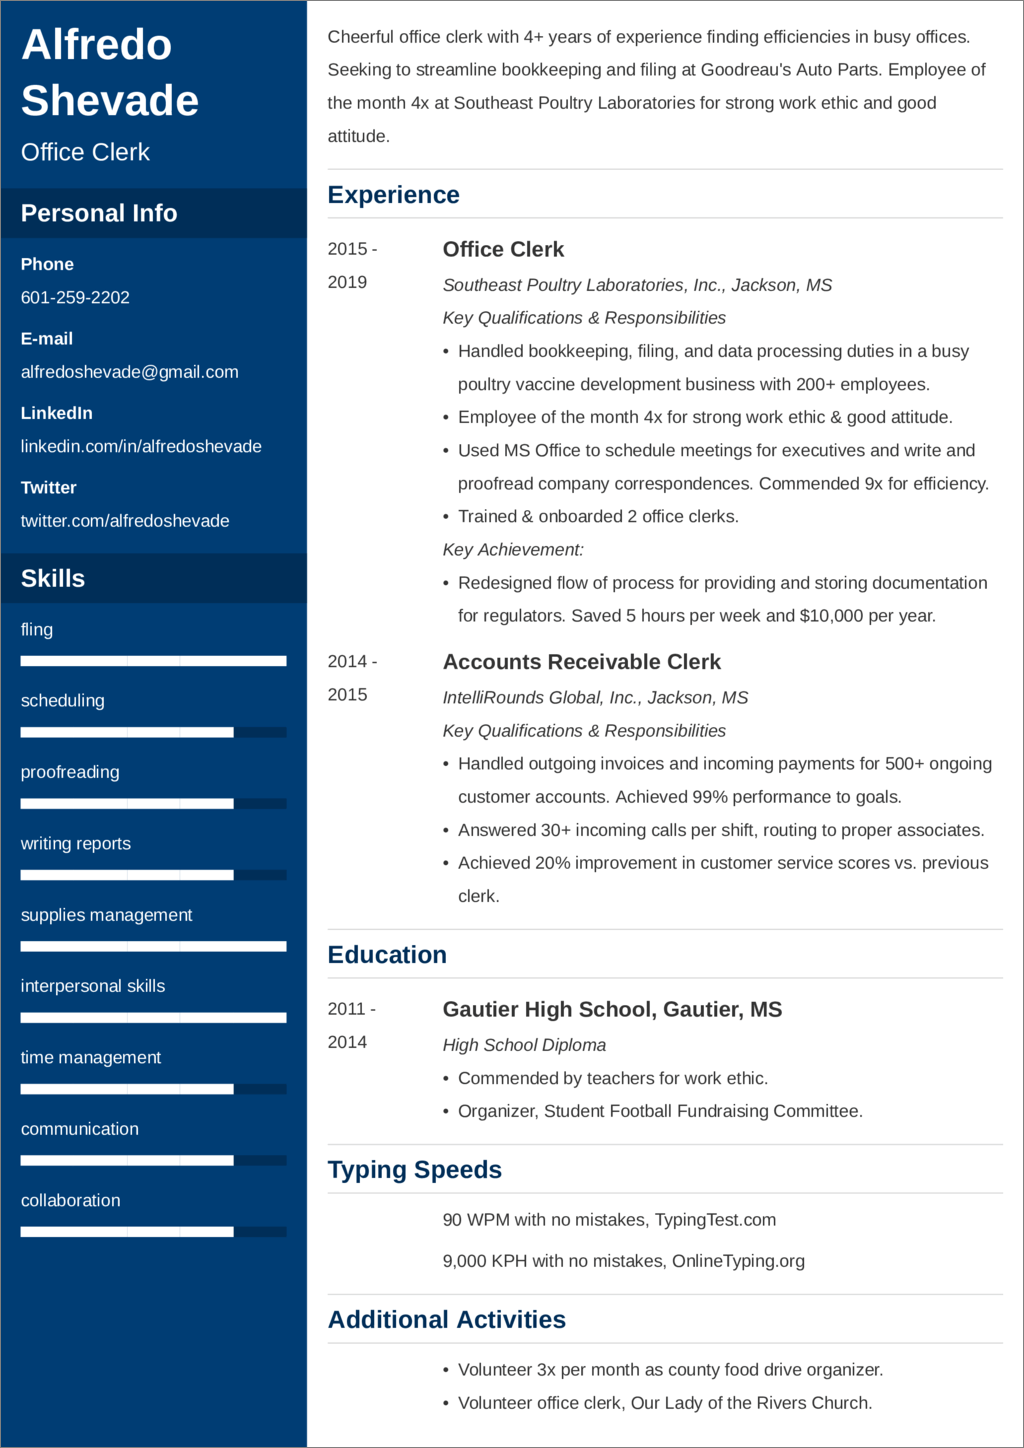 Office Clerk Resume—Examples and 25+ Writing Tips